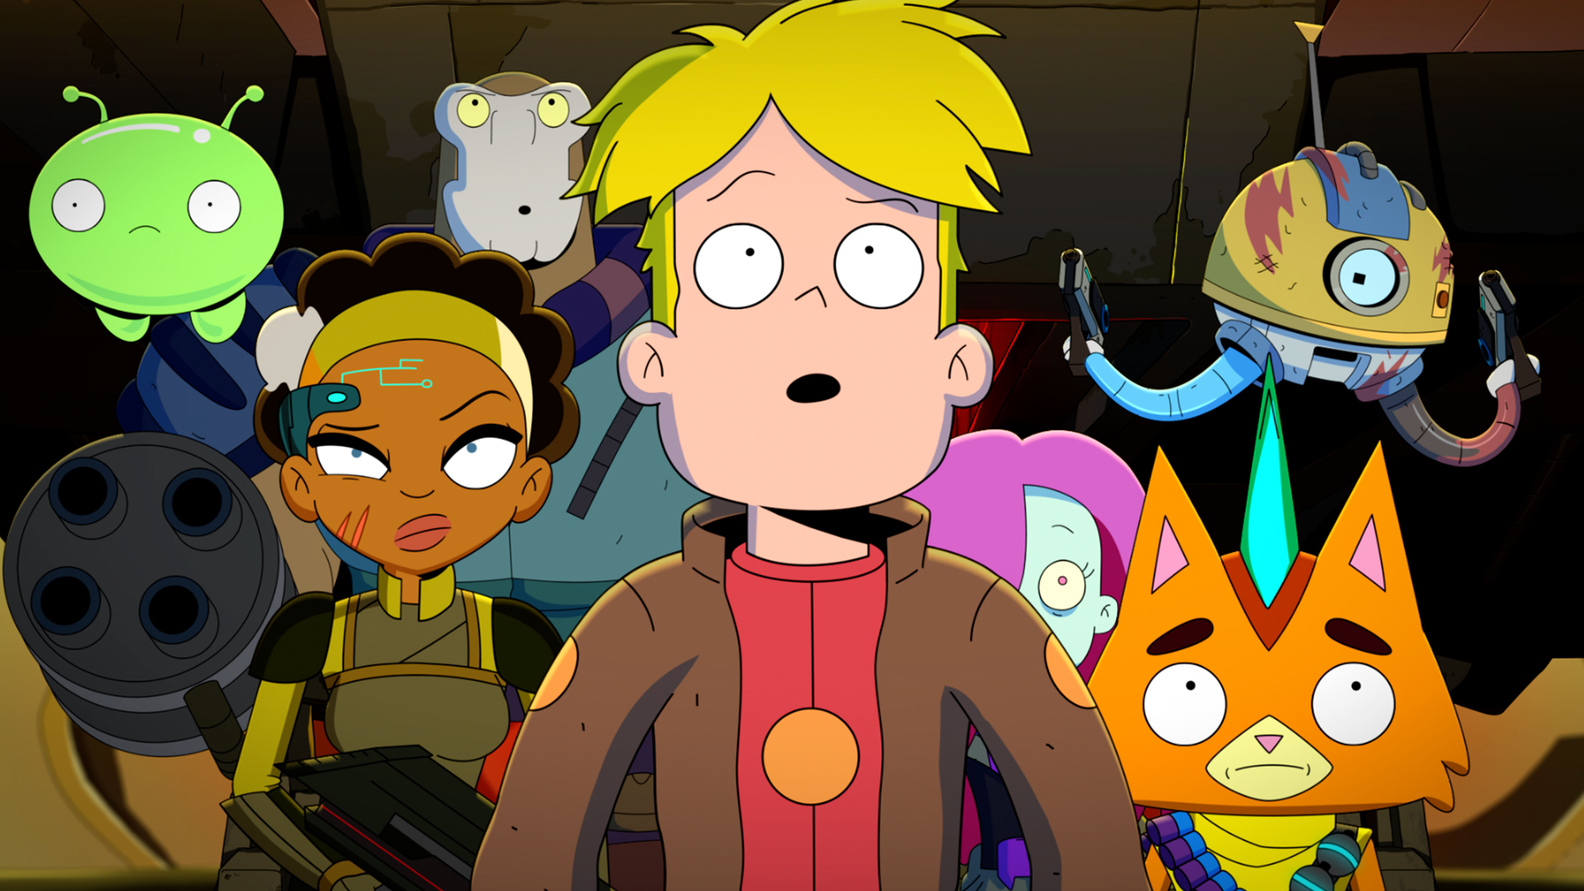 Final Space S2 image 5